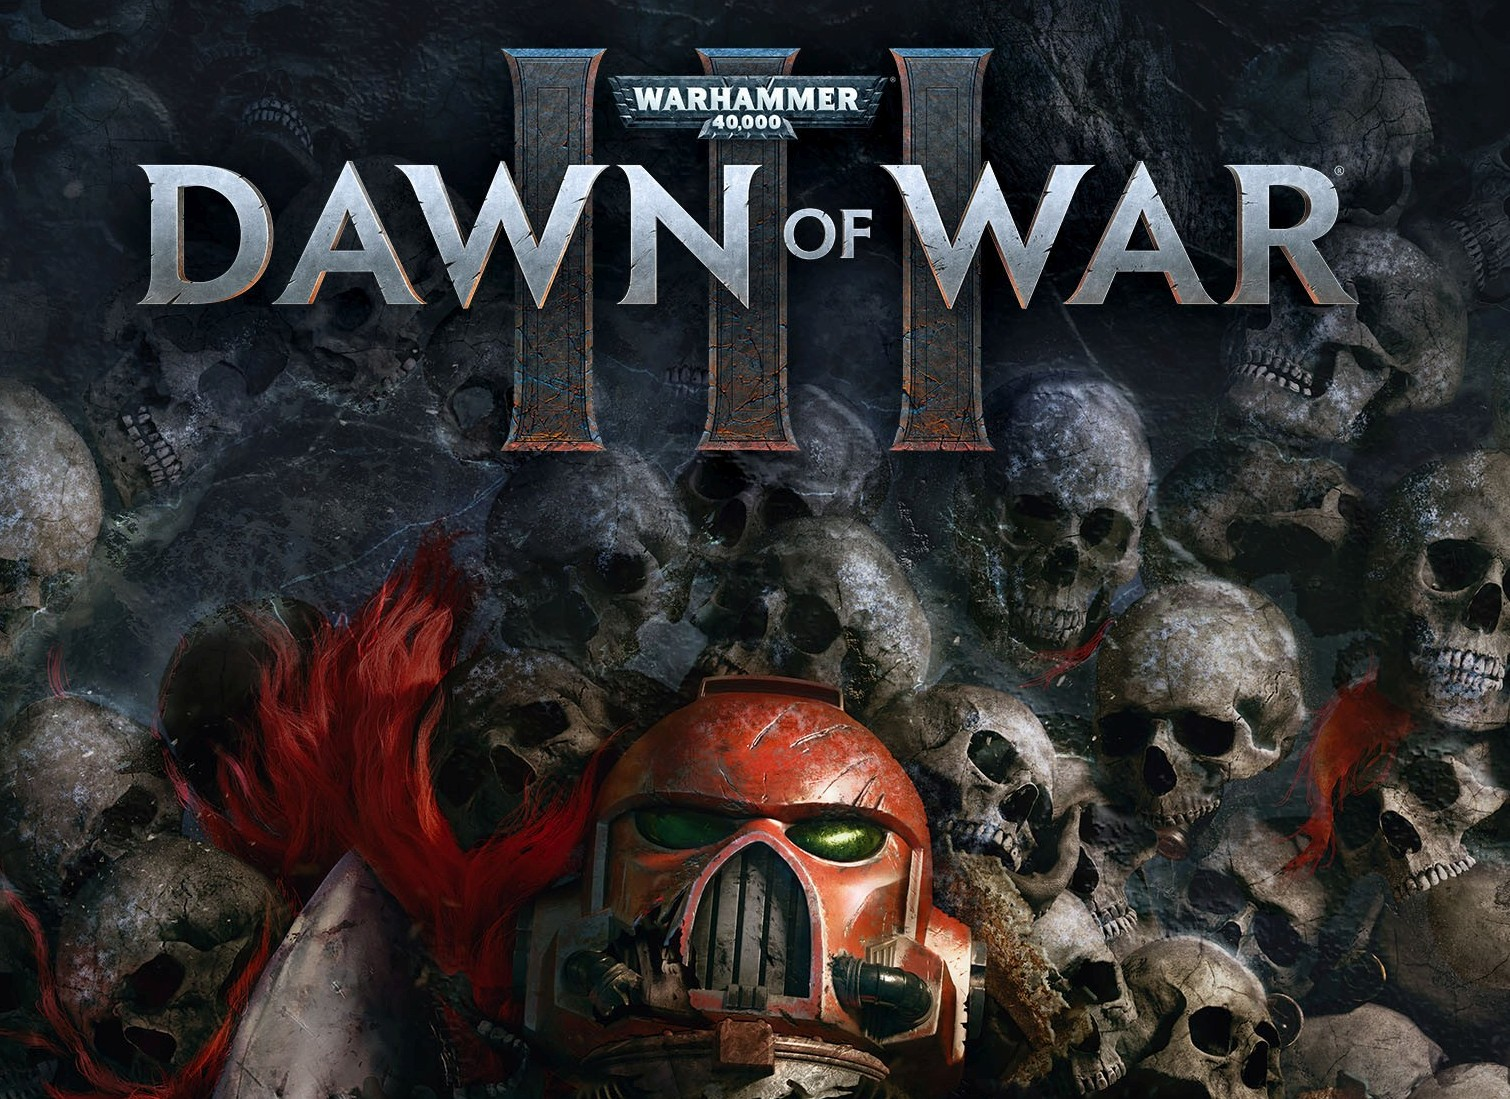 Warhammer 40,000 Dawn Of War 3 Crack Full PC Game 2021 Download [Free Torrent]